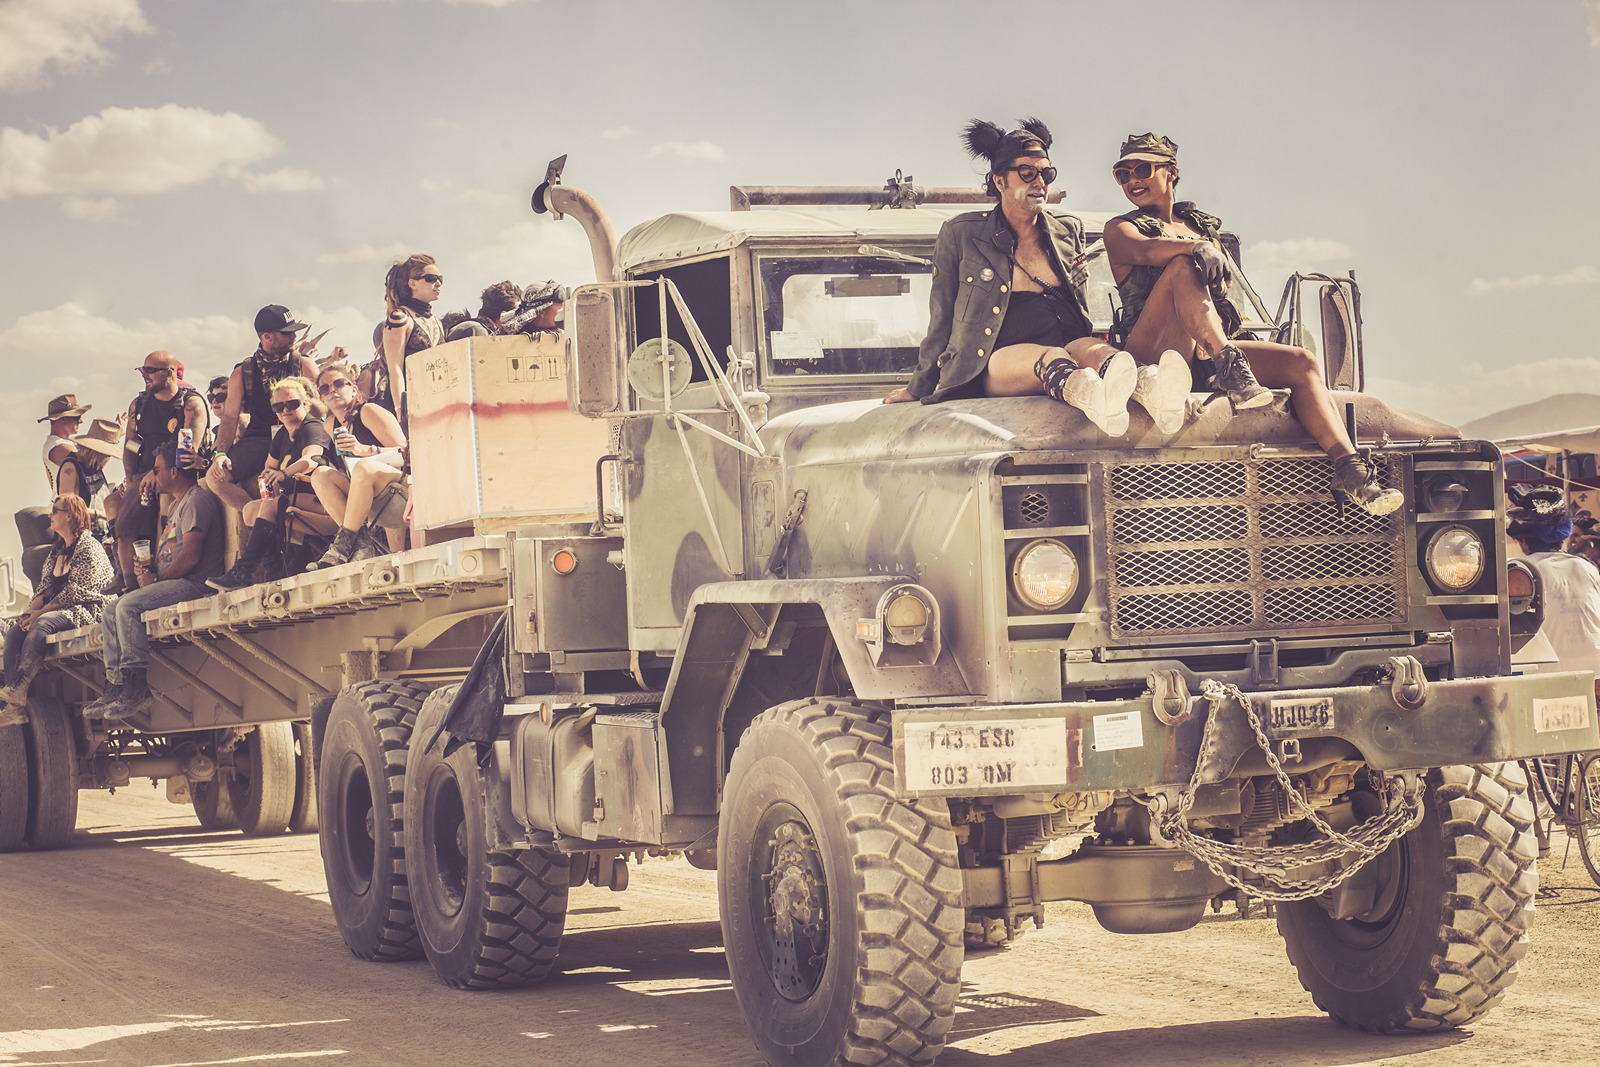 Burning Man - Military truck